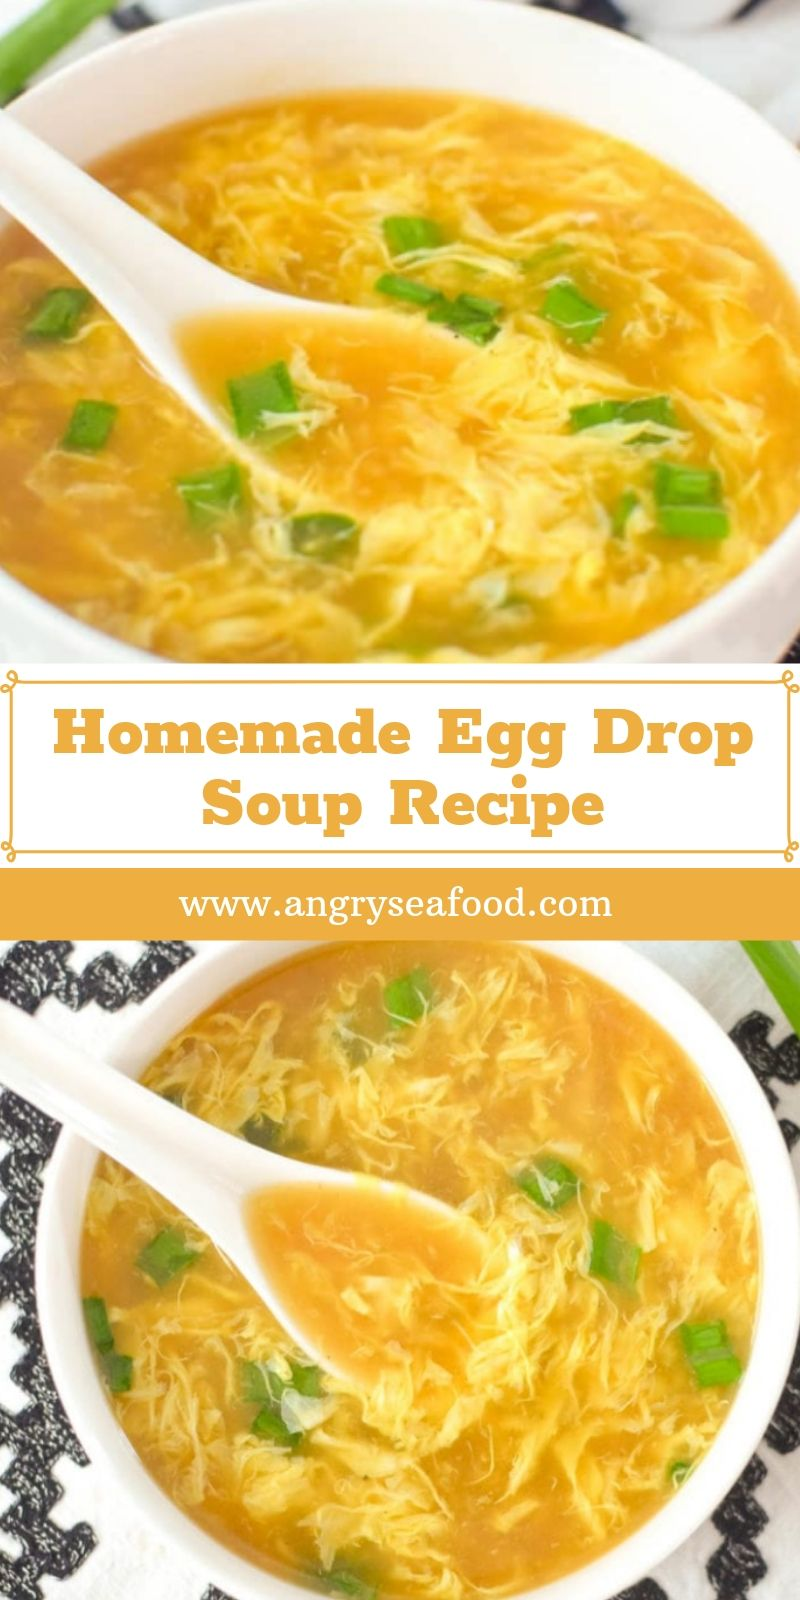 Homemade Egg Drop Soup Recipe